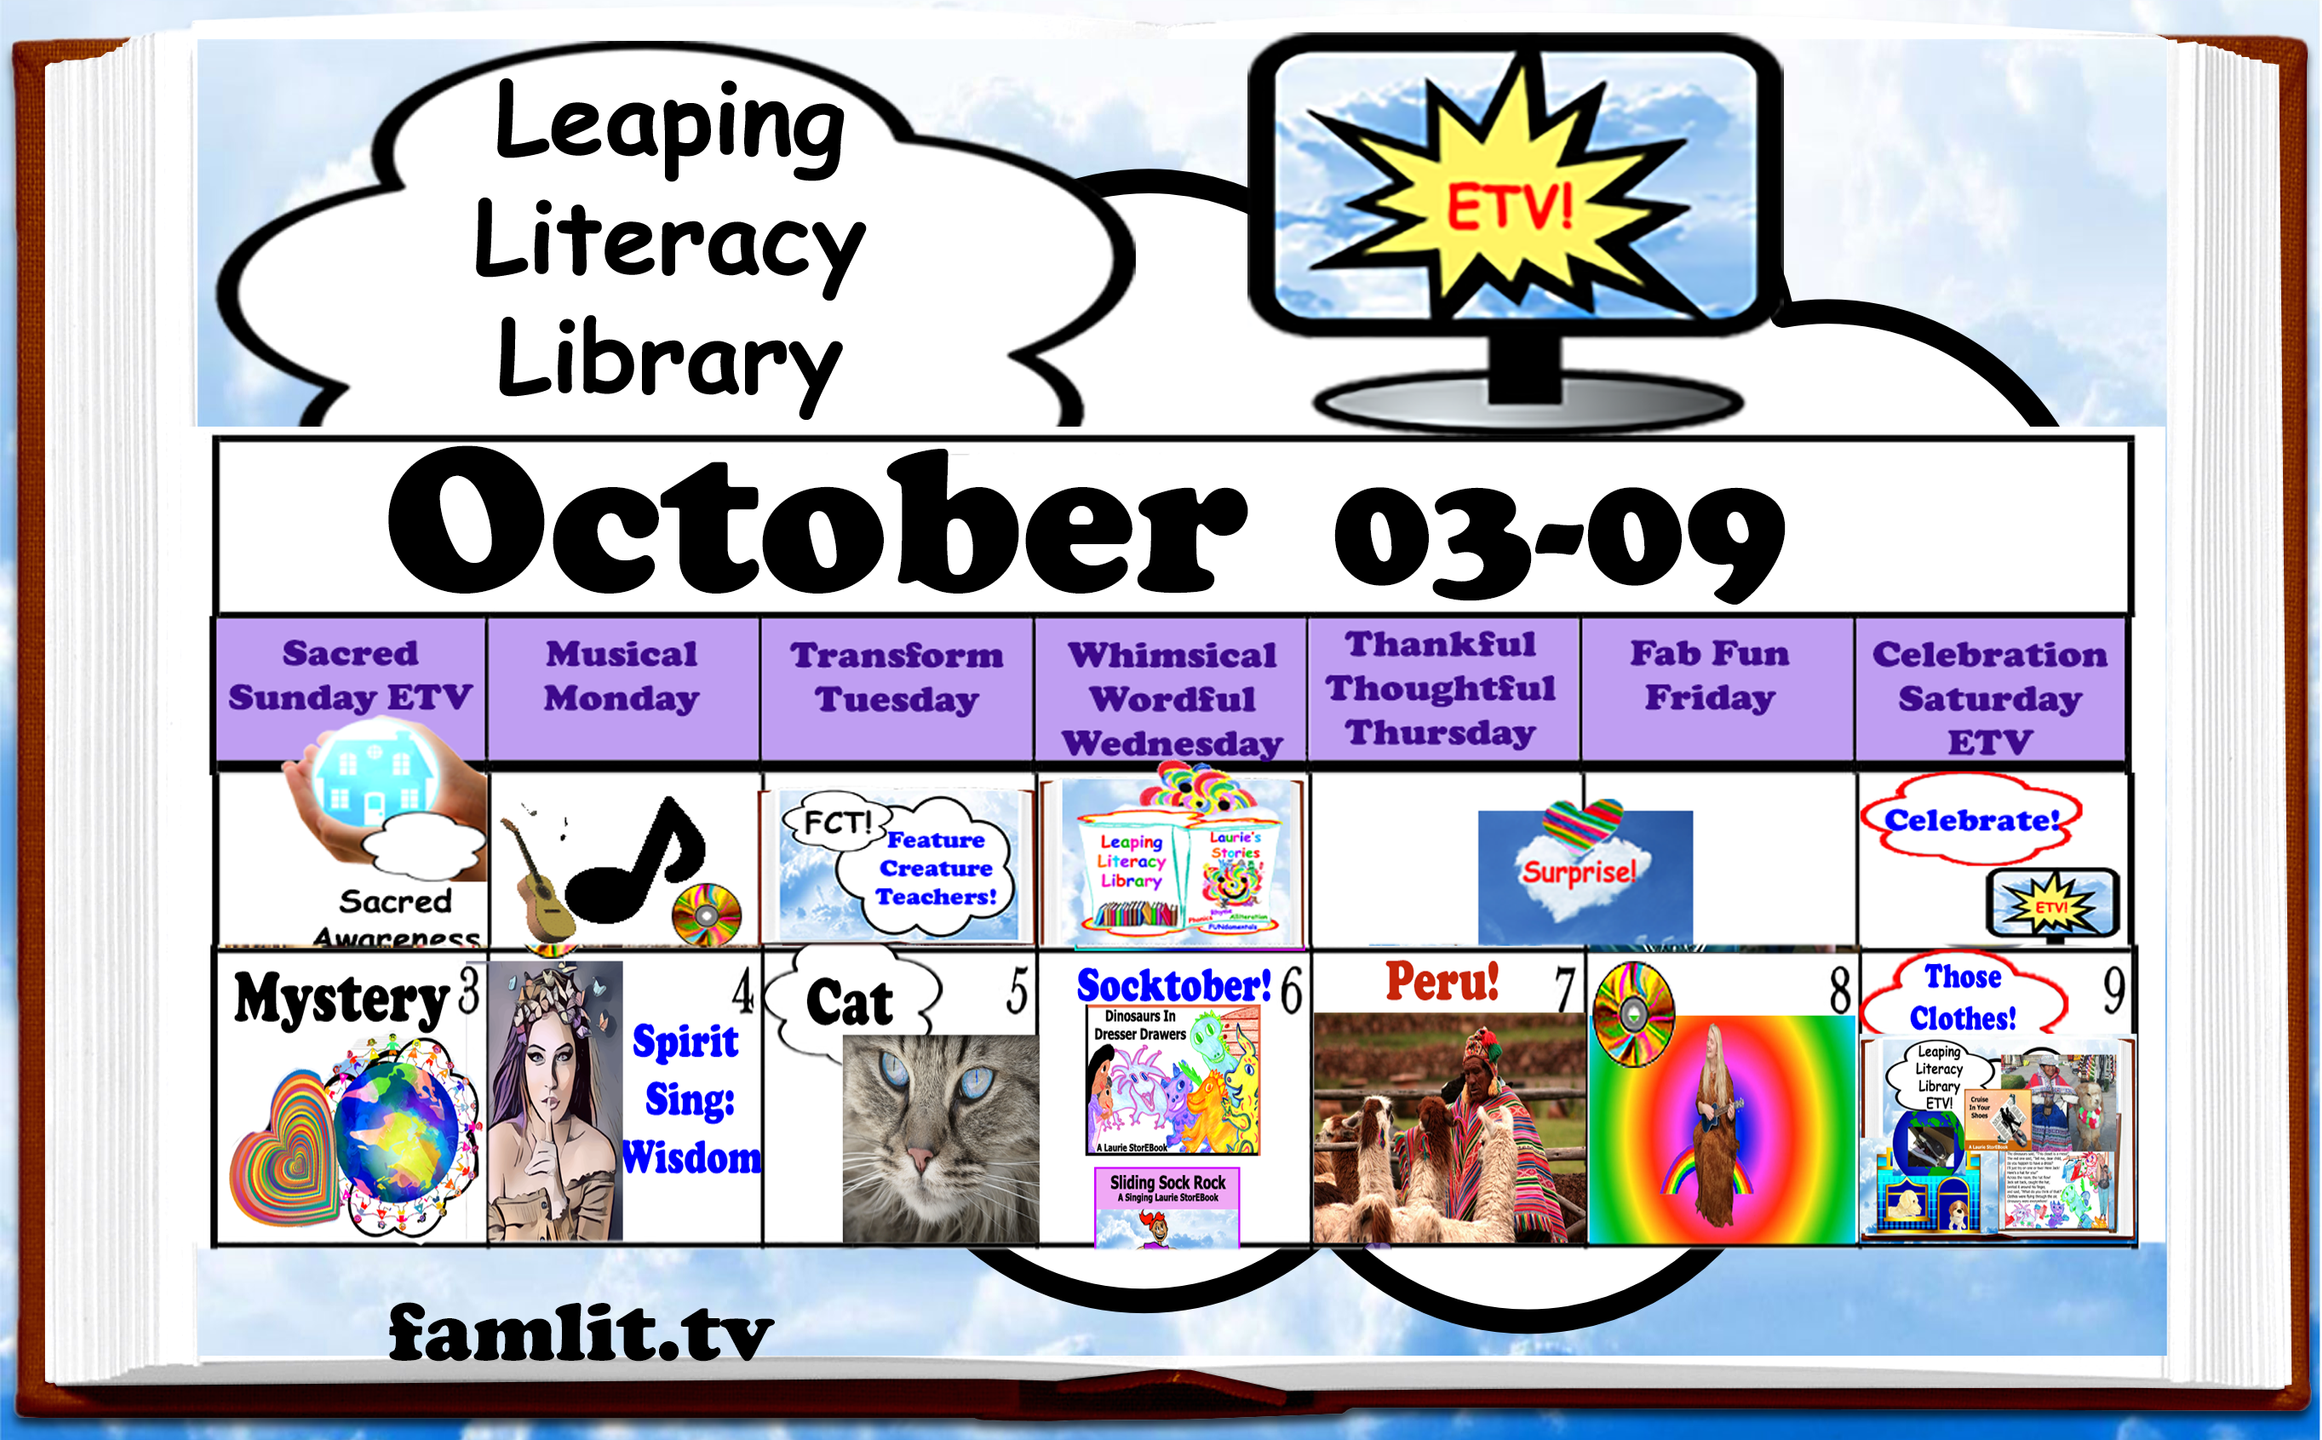 Leaping Literacy Library ETV!